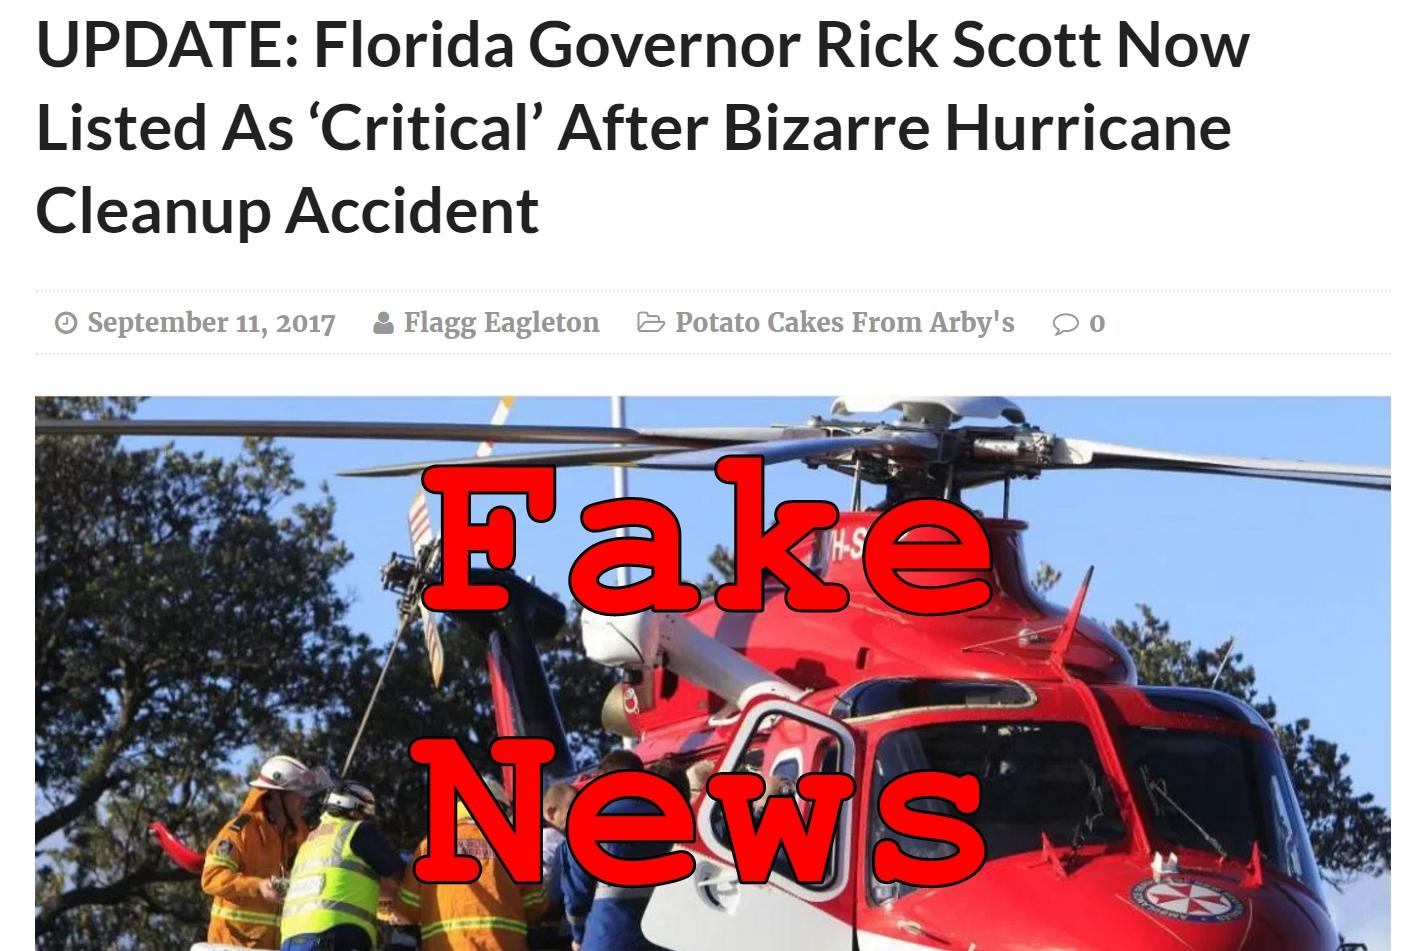 Fake News: Florida Governor Rick Scott NOT Listed As Critical After Bizarre Hurricane Cleanup Accident